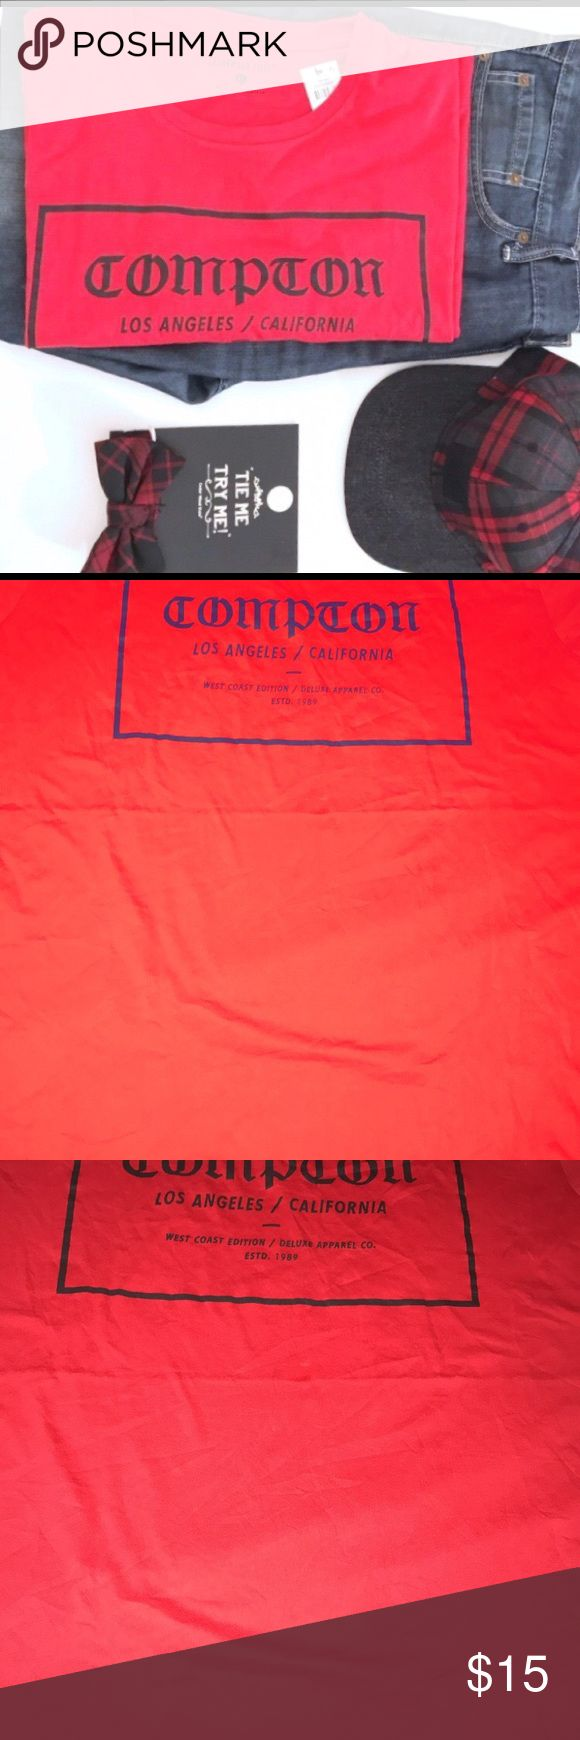 NEW Men's XL GRAPHIC COMPTON LOS ANGELES TEE Brand new t-shirt size XL. Originally purchased for a Posh photo prop so I have no use for it. Lol  Red and black just as shown in the photo. Offer away! ❤️🤷🏽‍♀️ Bundle and save! Shirts